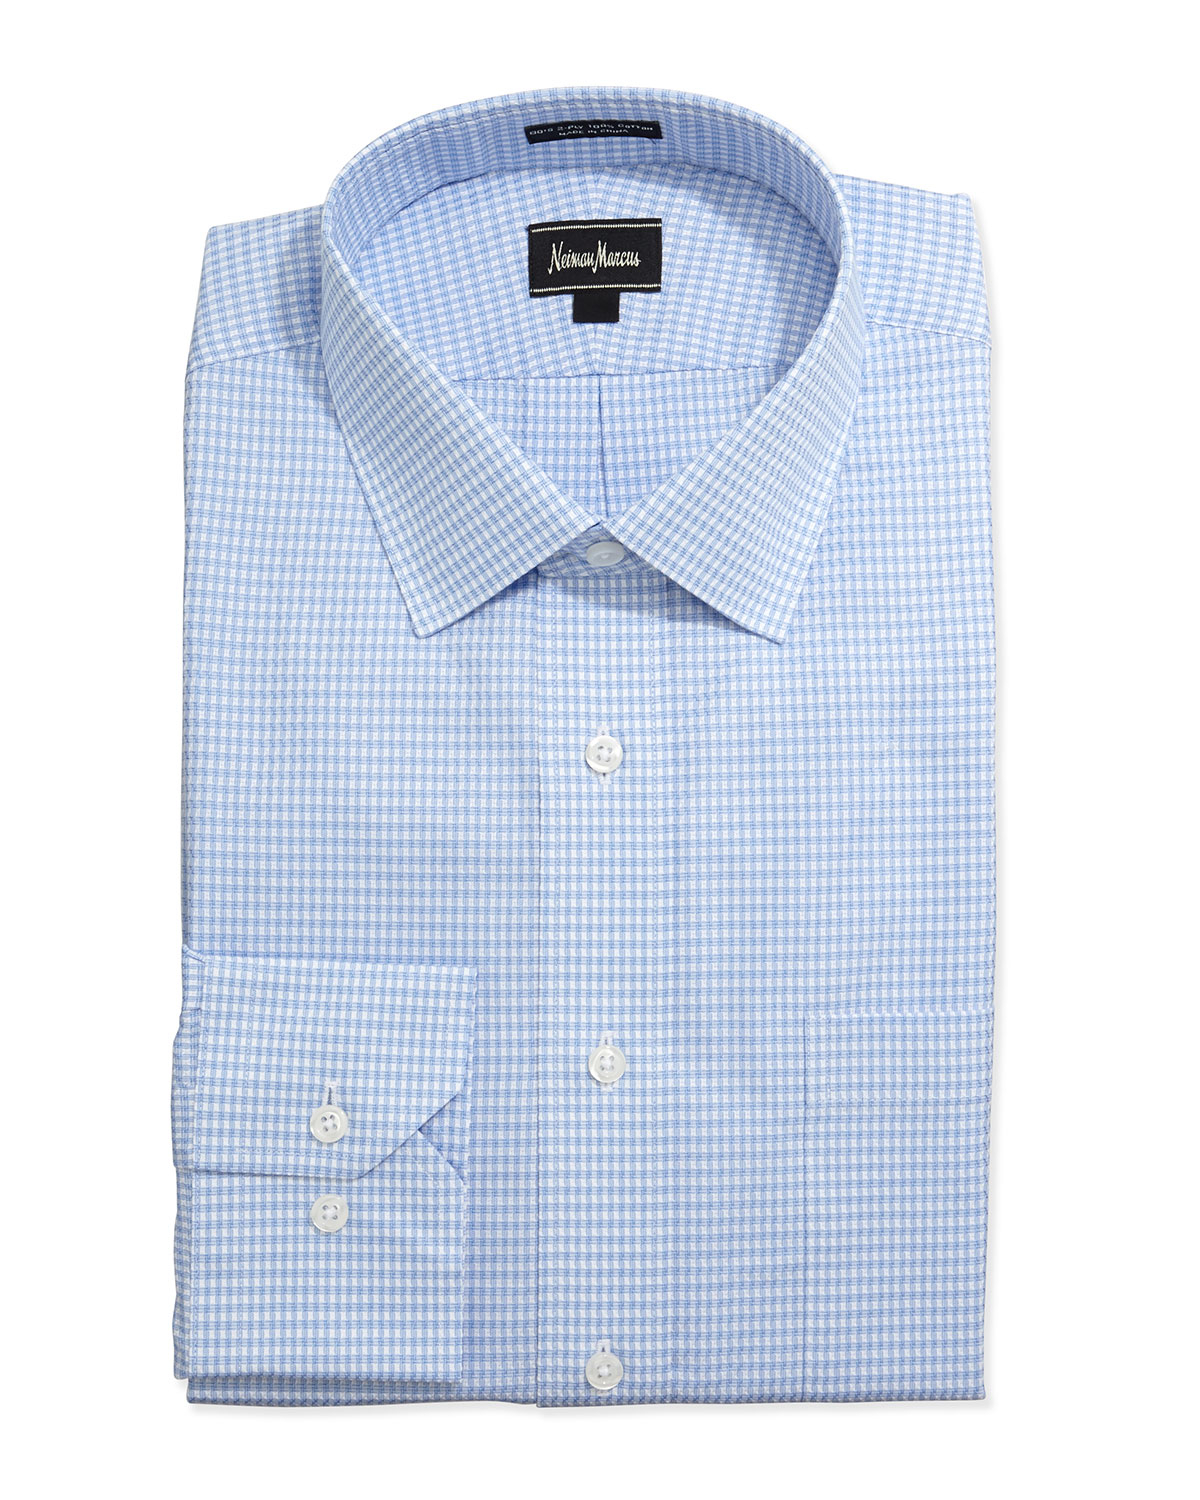 Neiman marcus classic fit grid check dress shirt in blue for Blue check dress shirt